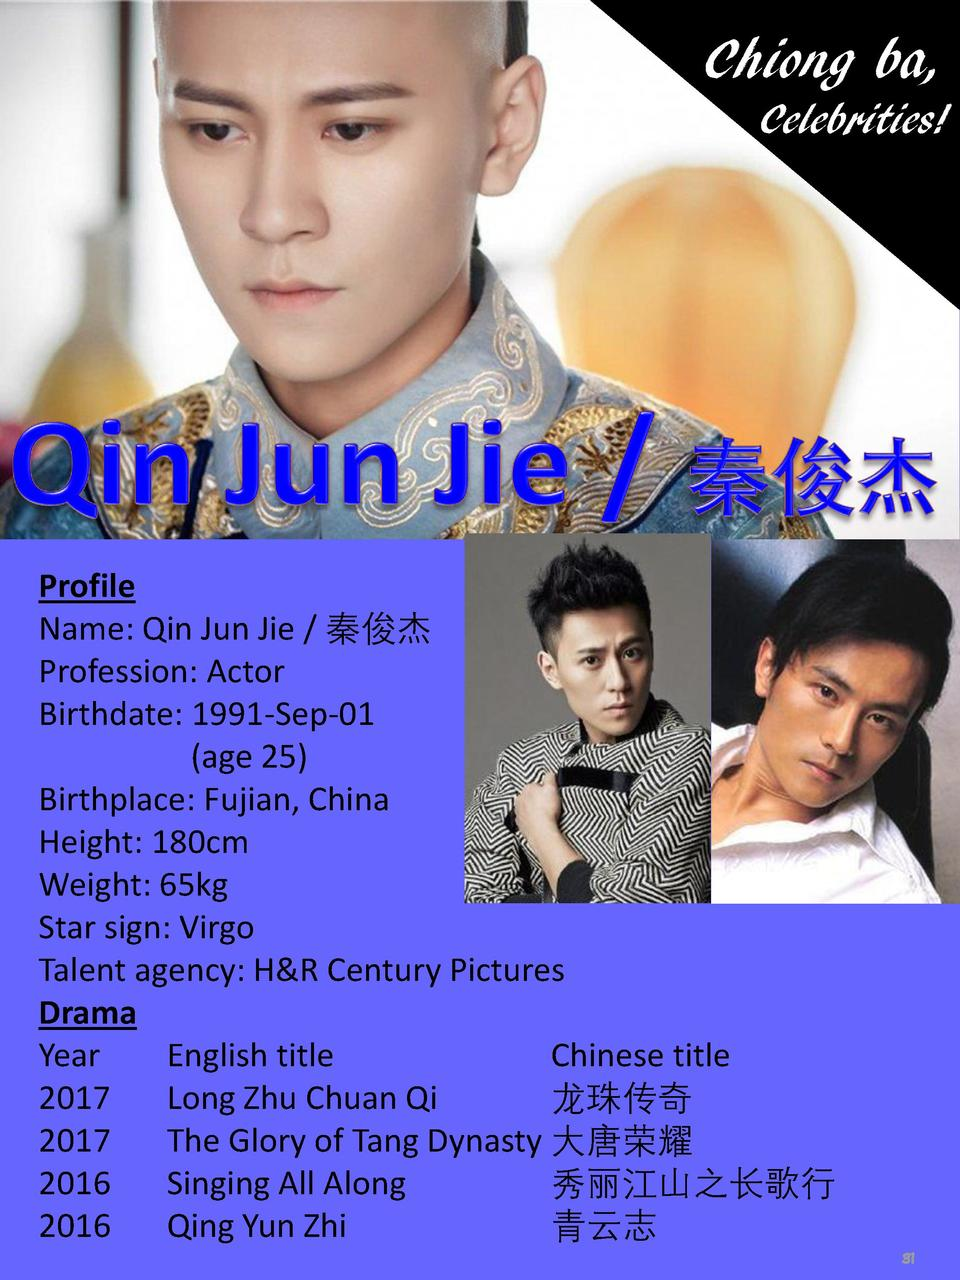 Chiong ba, Celebrities   Profile Name  Qin Jun Jie             Profession  Actor Birthdate  1991-Sep-01  age 25  Birthplac...